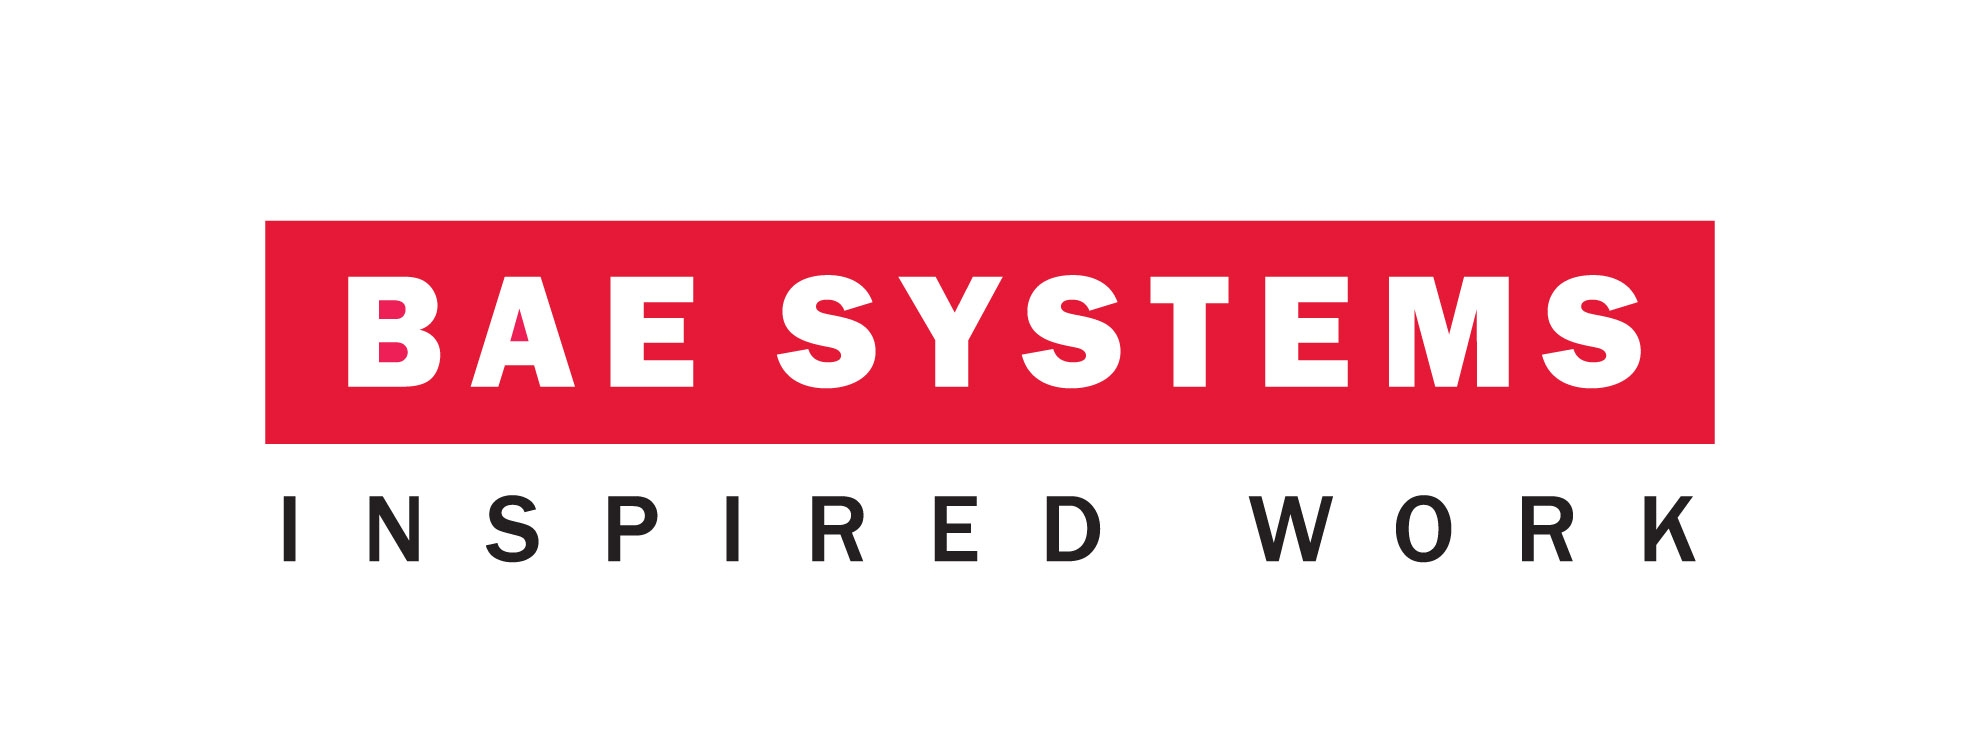 BAE Systems Announces Proposed Acquisition of Collins Aerospace's Military Global Positioning System Business and Raytheon's Airborne Tactical Radios Business